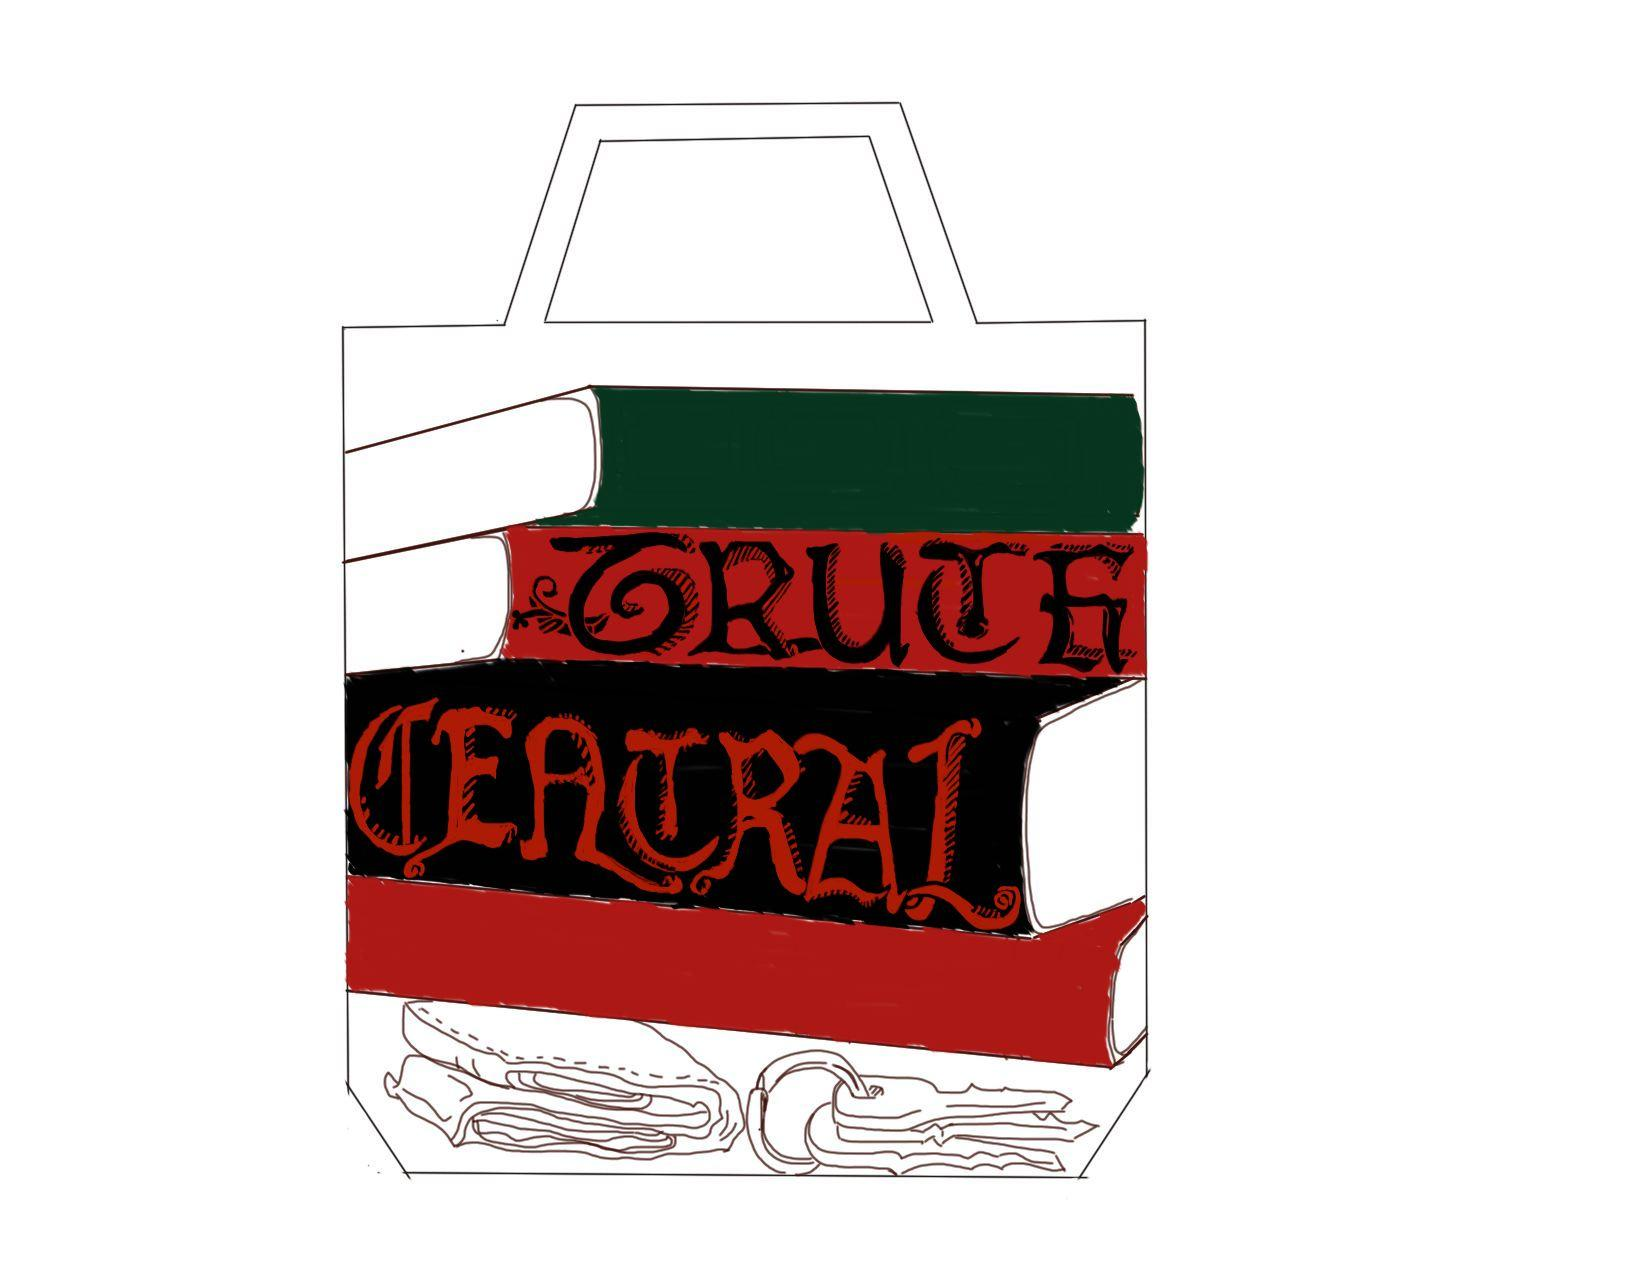 Truth Central logo - image 2 - student project